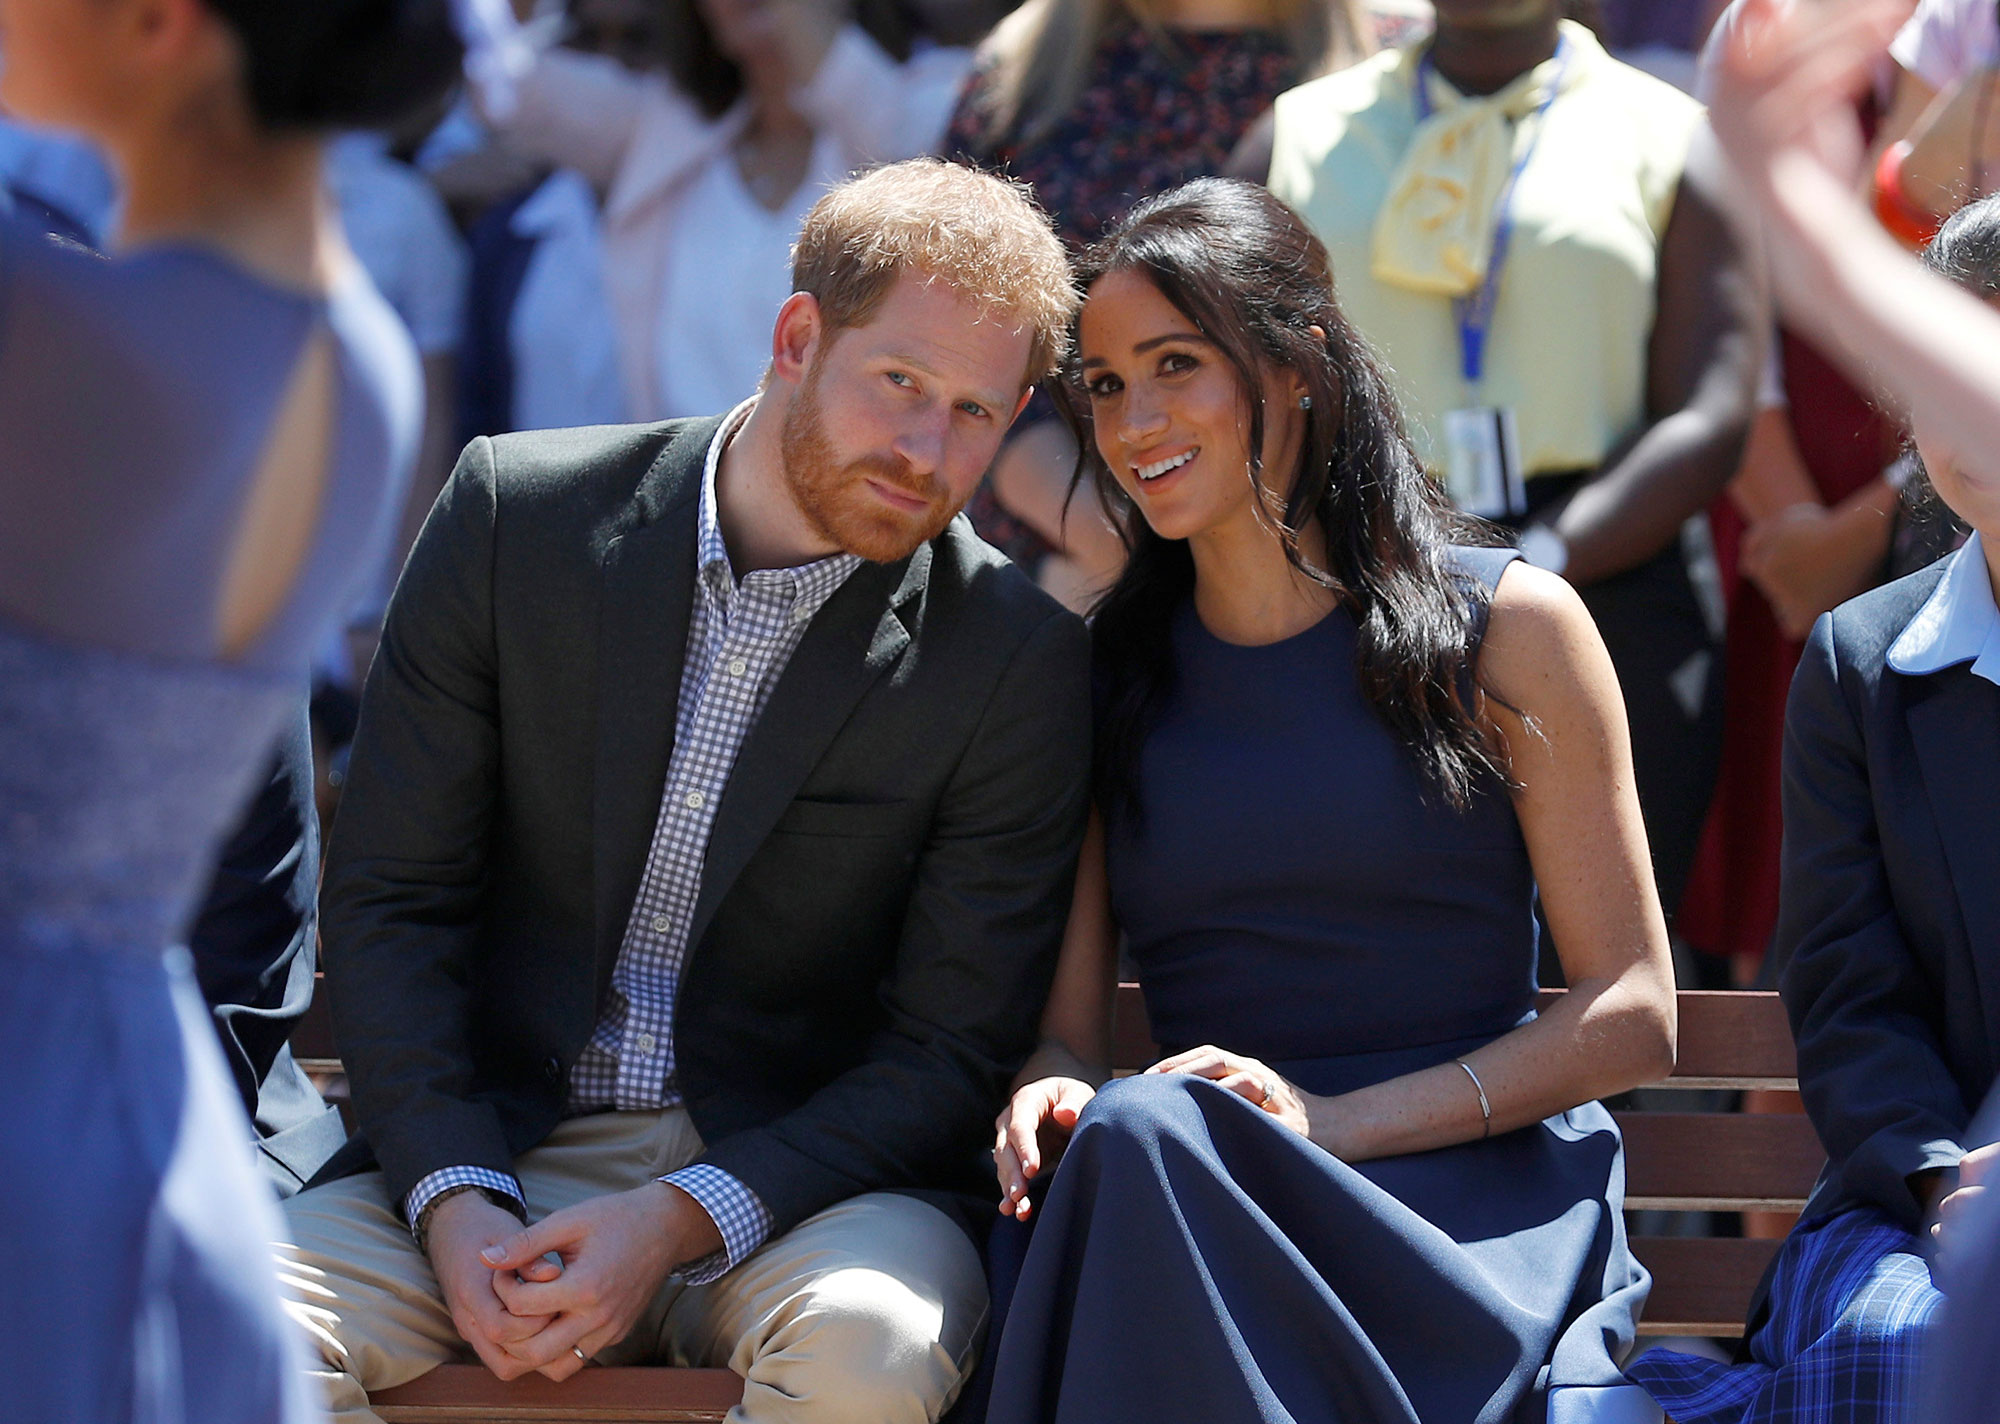 "<div class=""meta image-caption""><div class=""origin-logo origin-image none""><span>none</span></div><span class=""caption-text"">Prince Harry and Meghan, Duchess of Sussex watch a performance during their visit to Macarthur Girls High School in Sydney, Australia on Oct. 19. (Phil Noble/Pool Photo via AP)</span></div>"